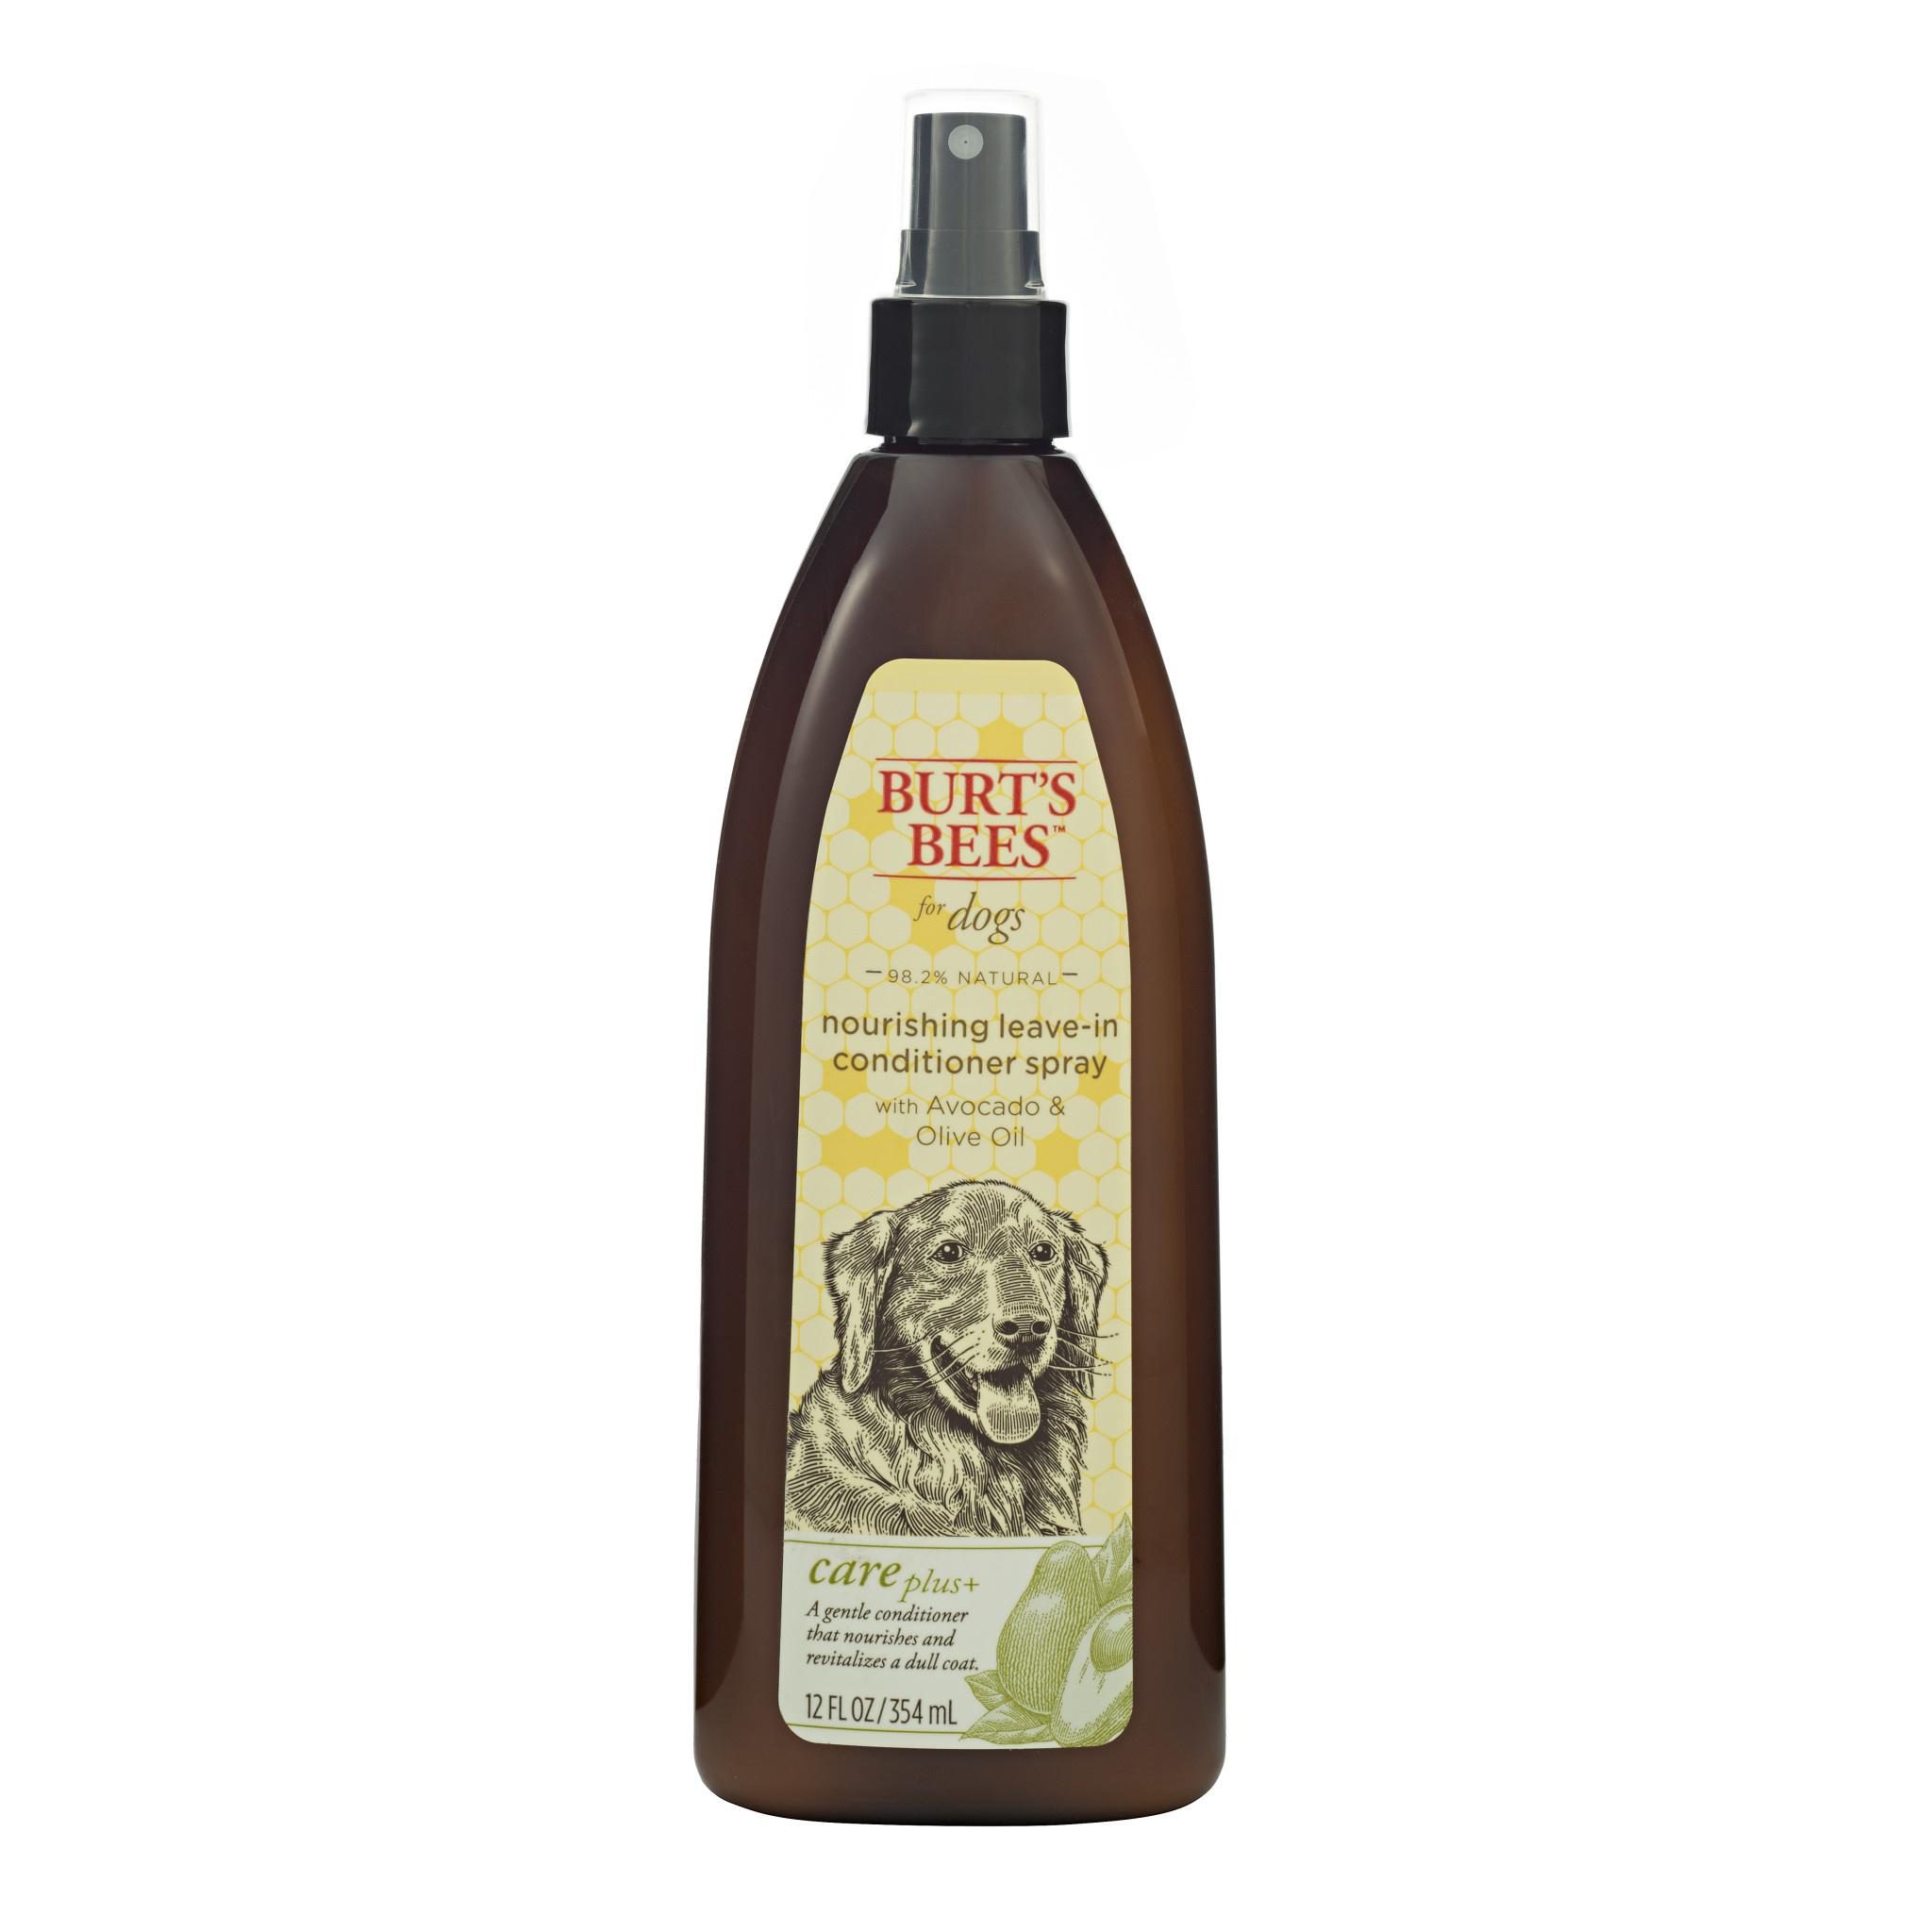 Burt's Bees Burt's Bees Conditioner Spray 12 oz